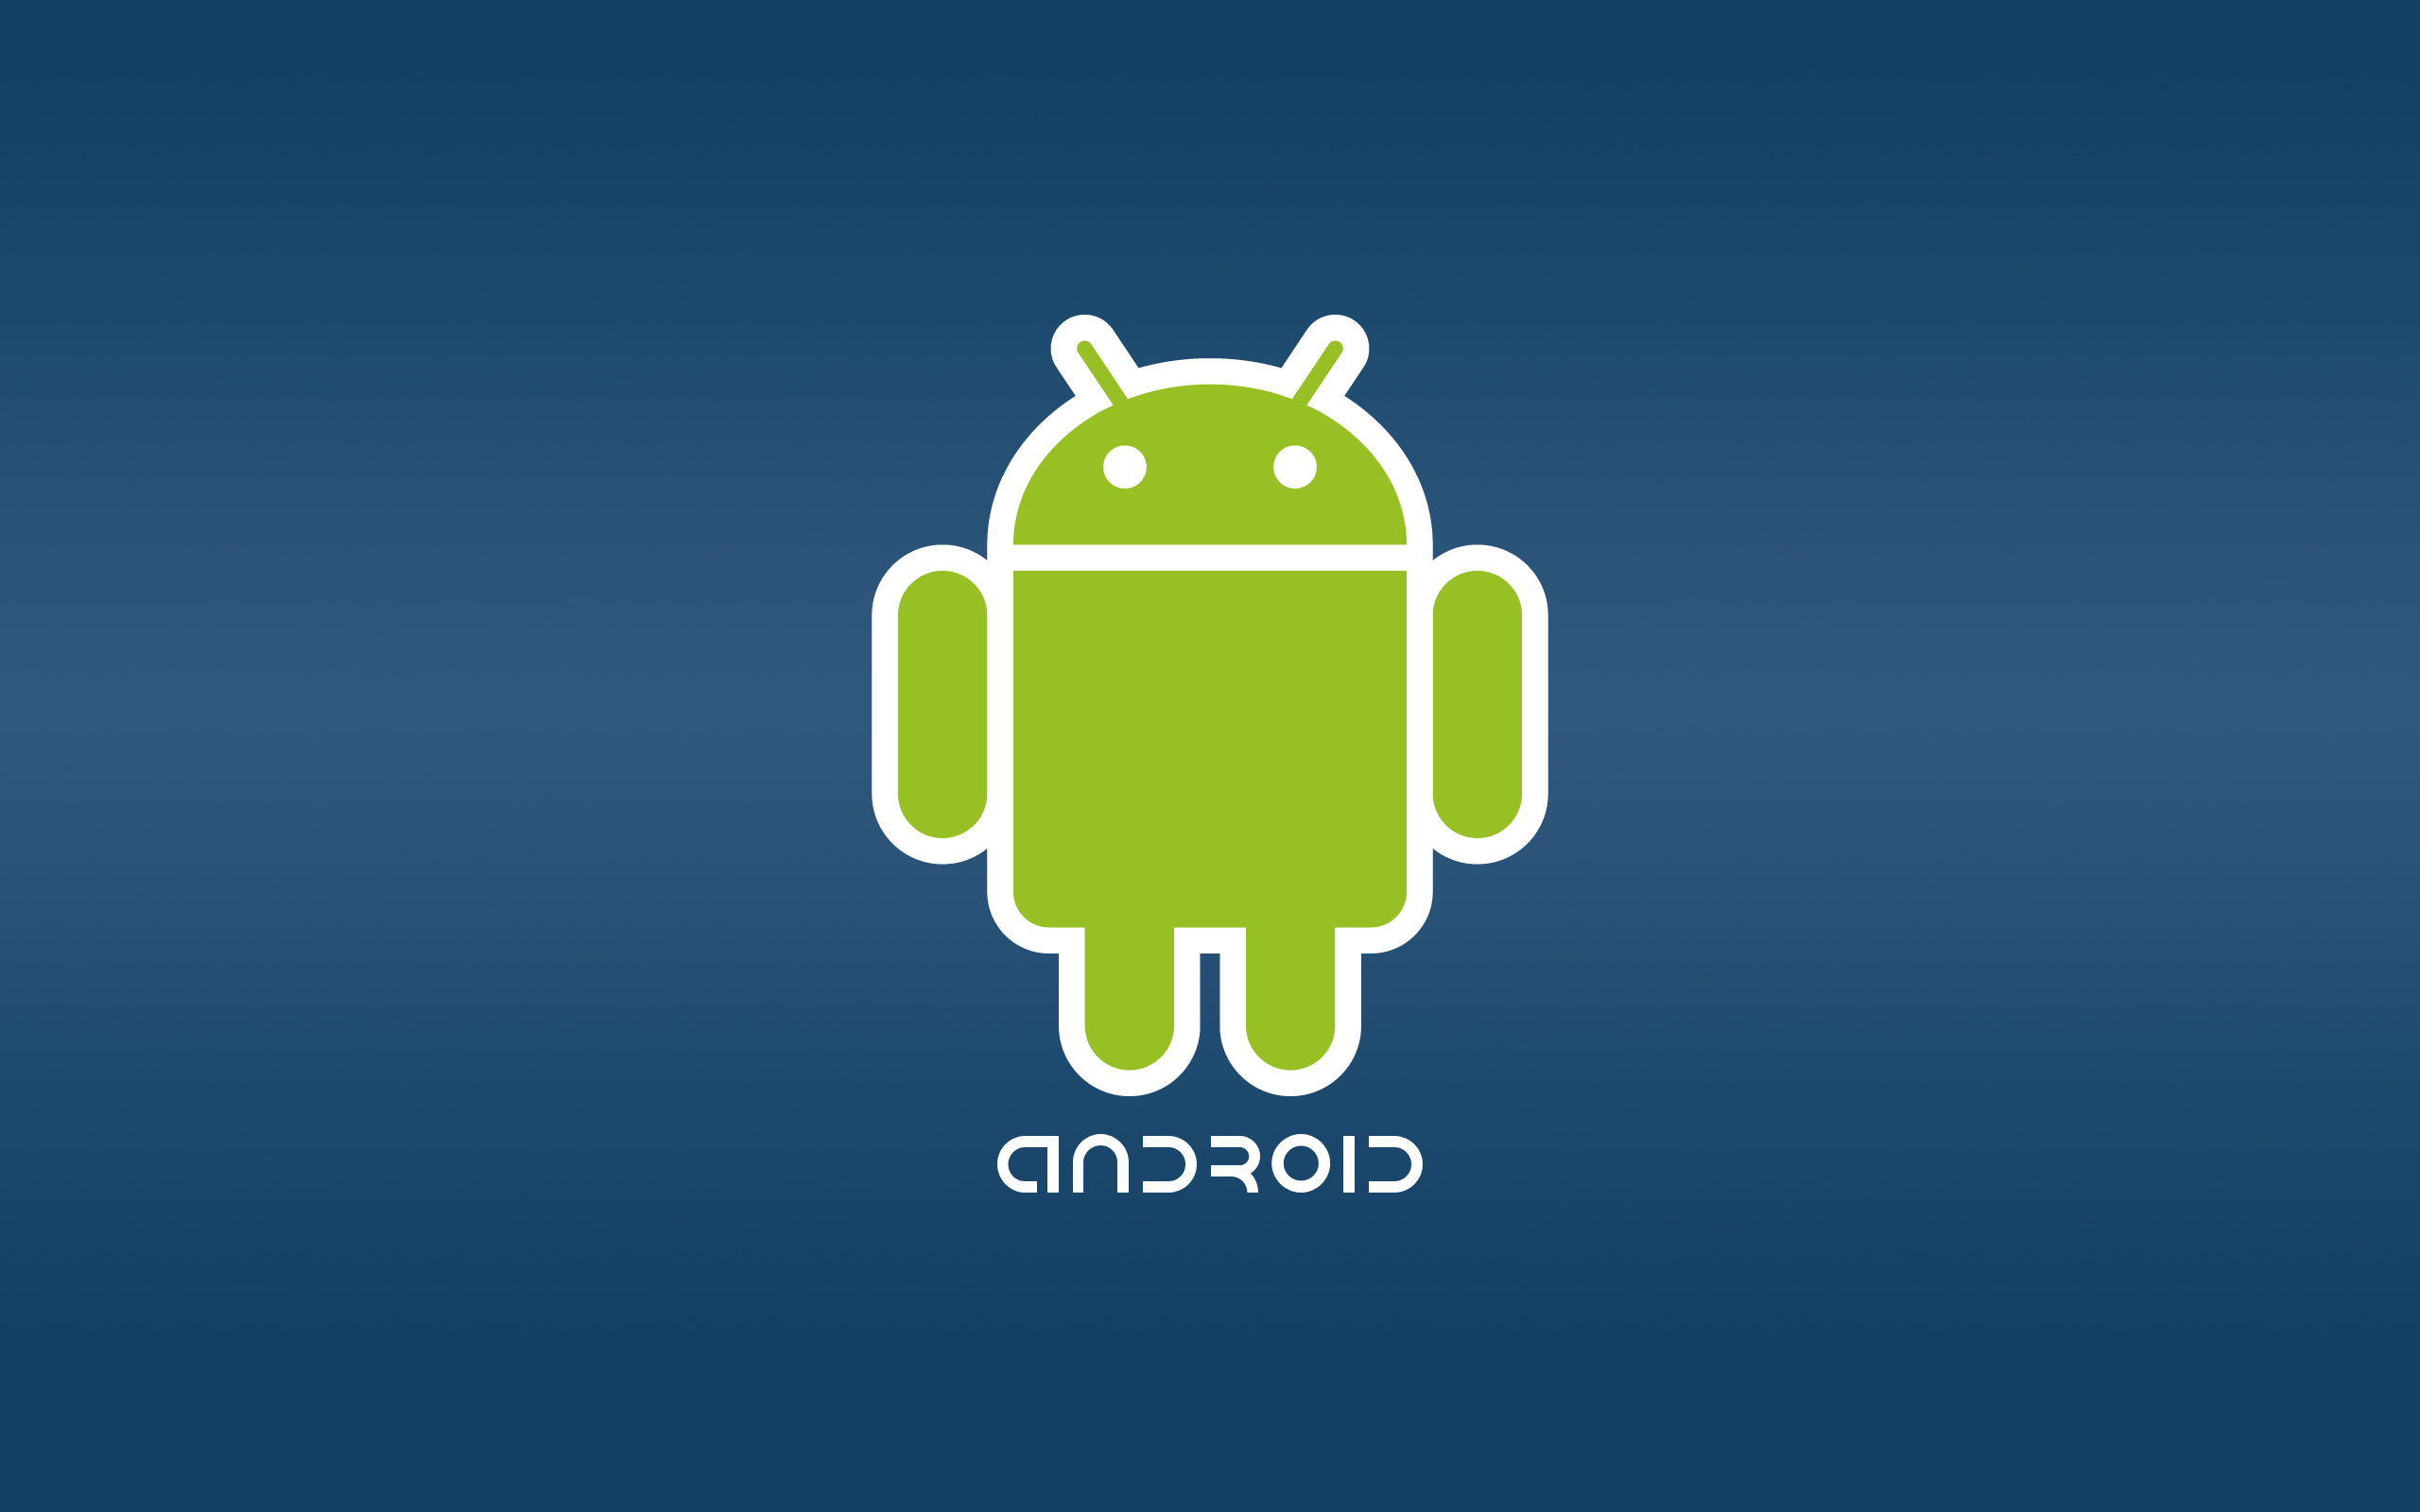 Icon Wallpaper For Android